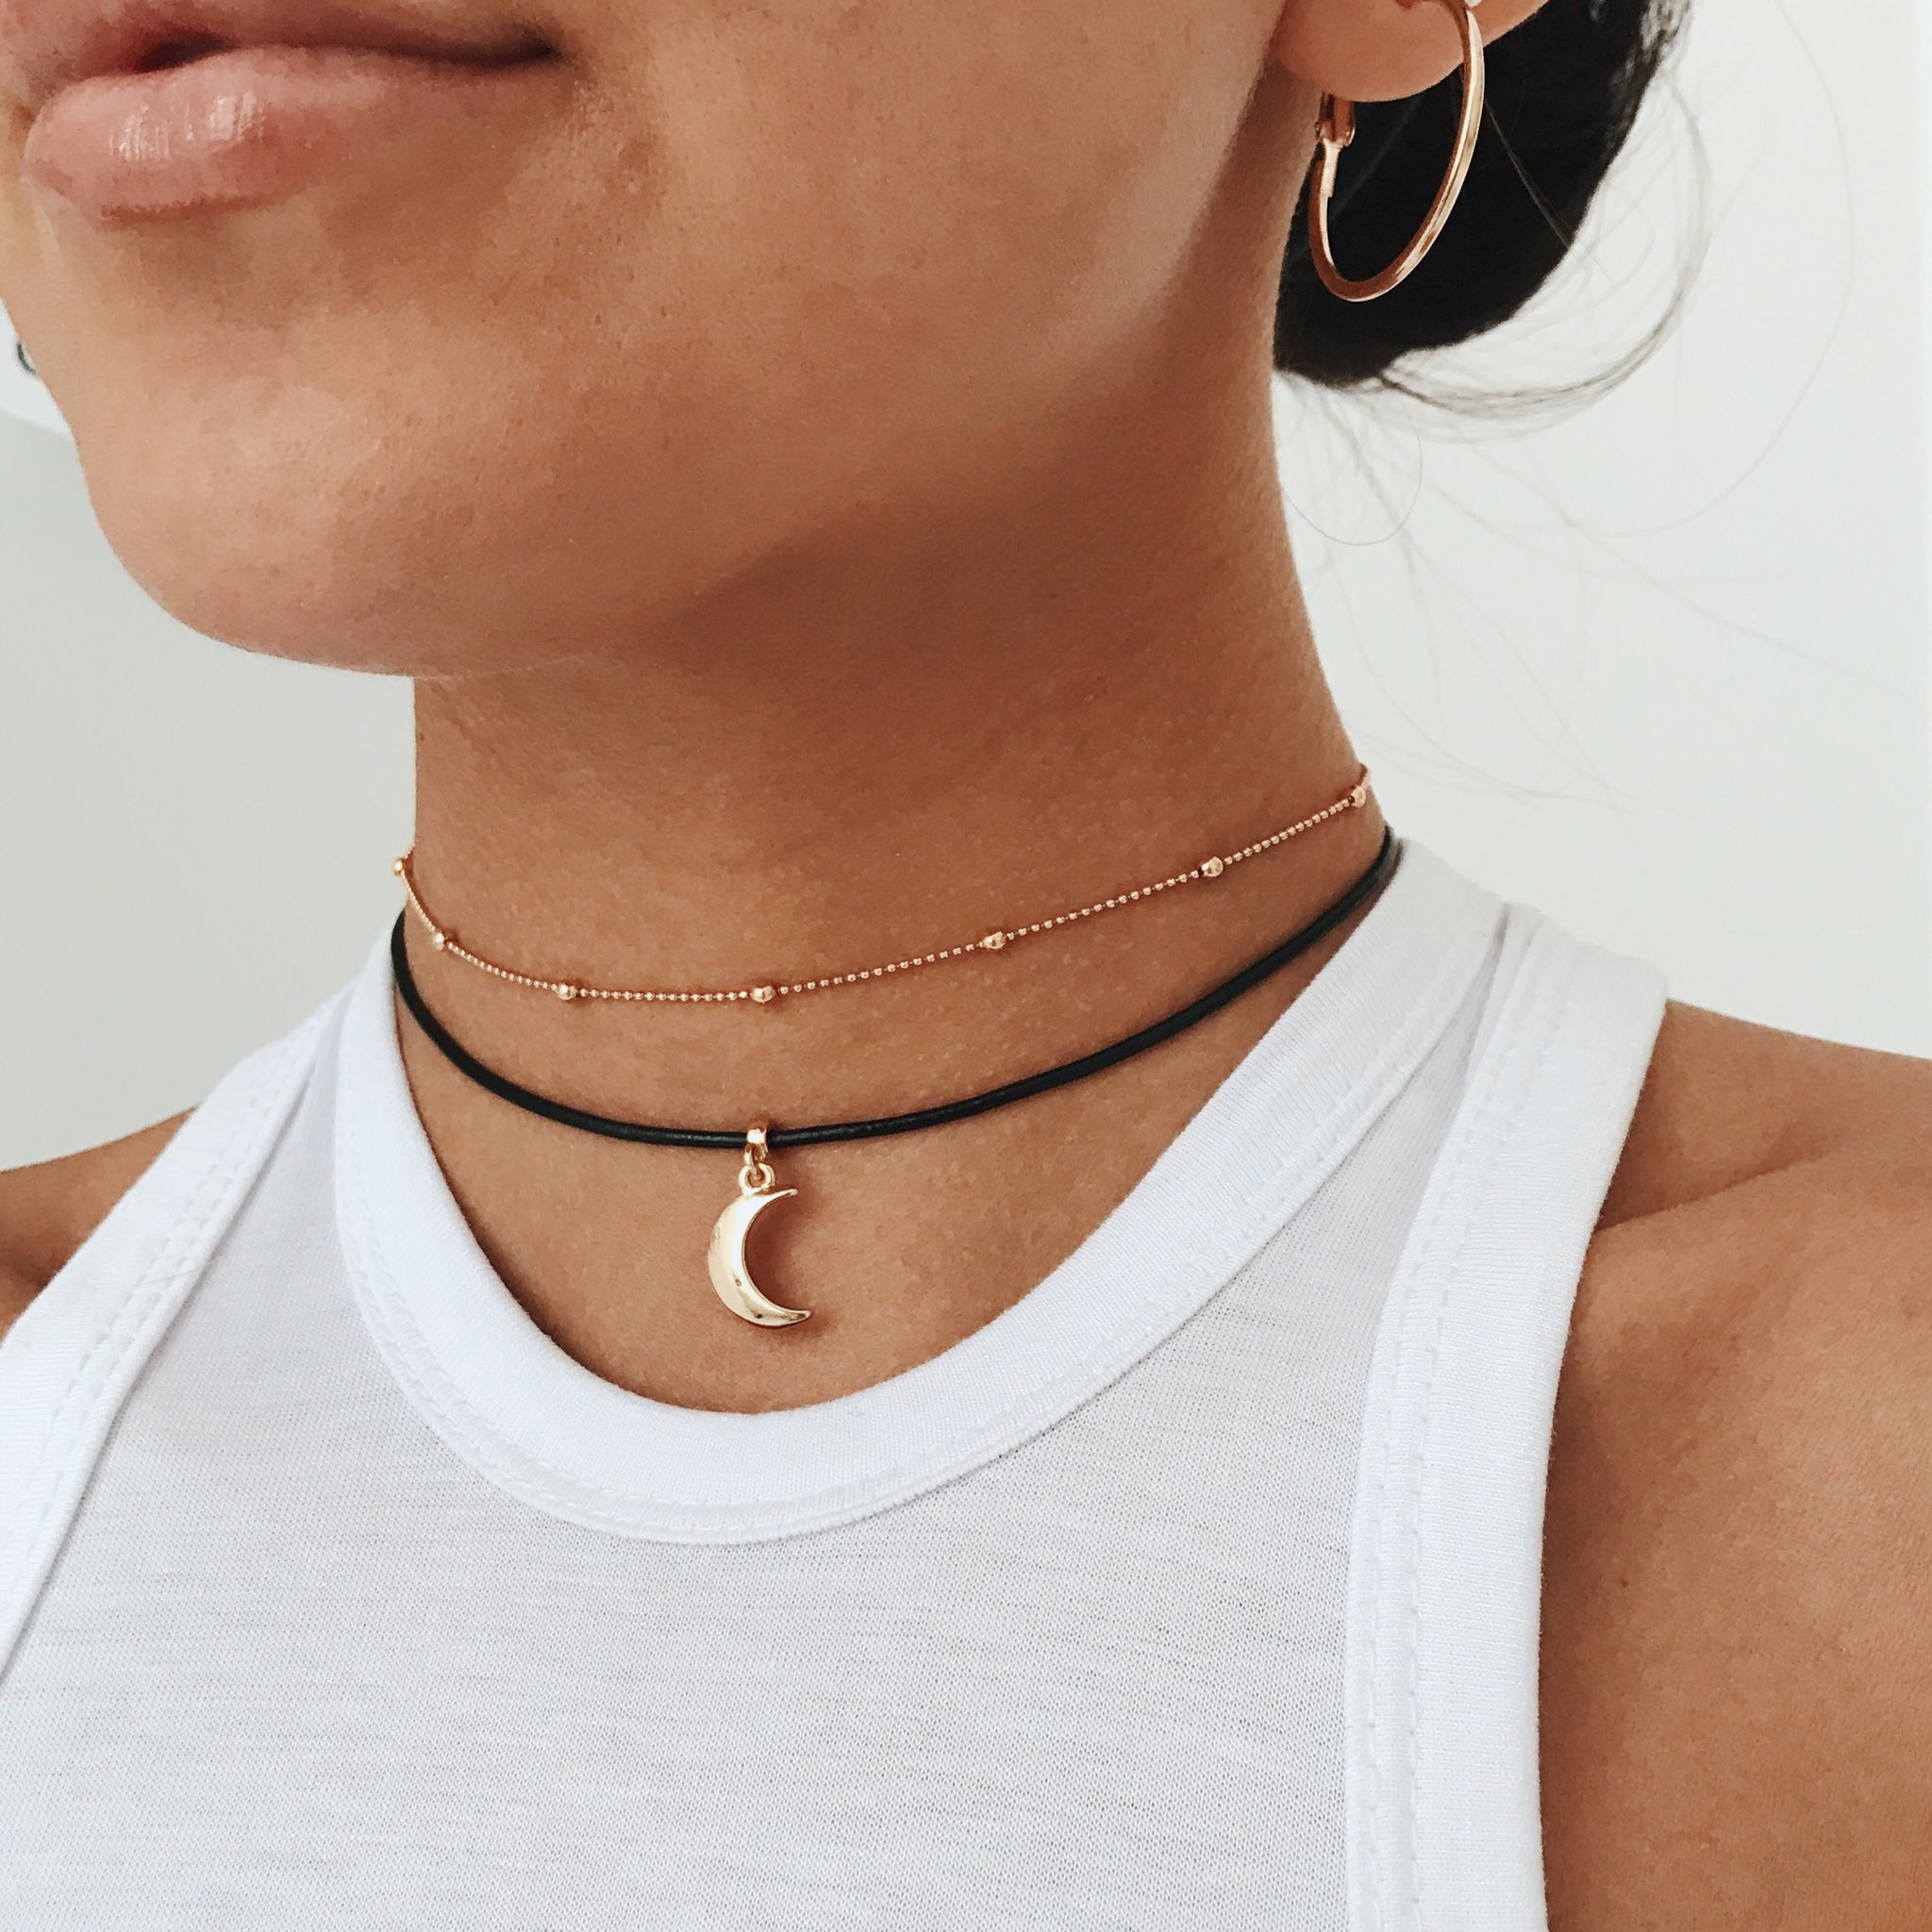 so many chokers to choose from ✨  https://t.co/LirPfyz9zm ��✨ https://t.co/GKa27G1TU6